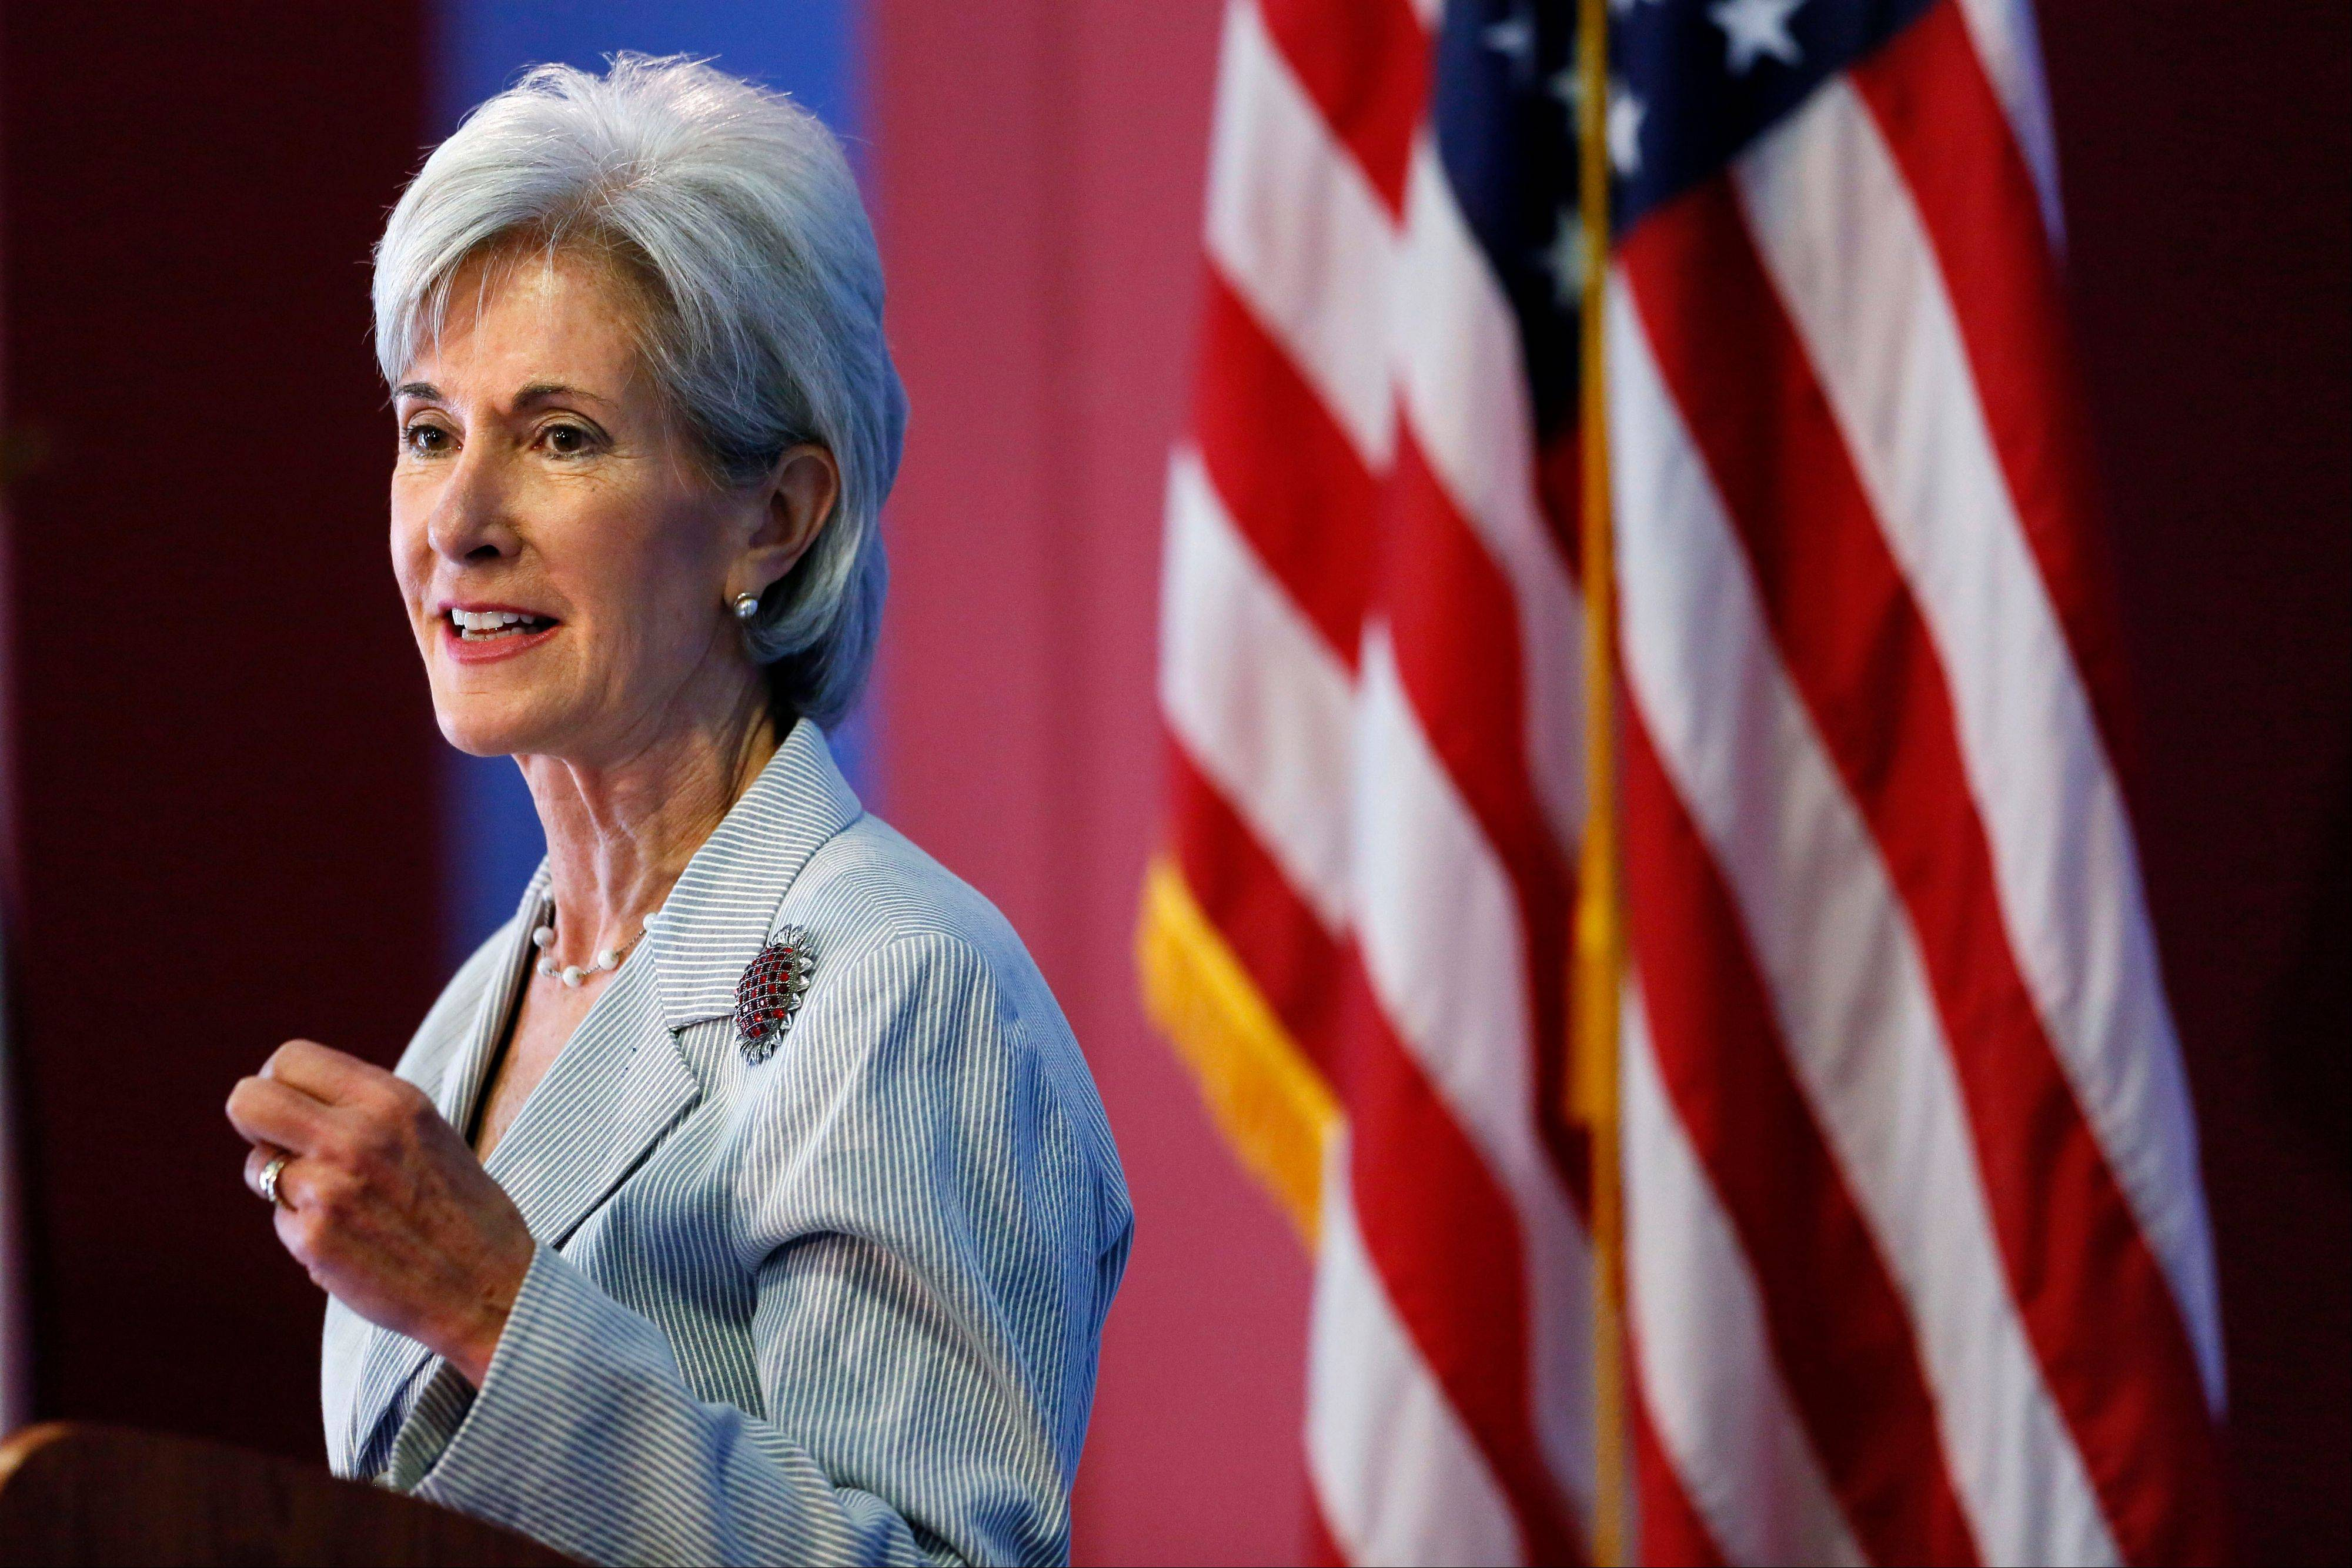 Health and Human Services Secretary Kathleen Sebelius speaks during an event discussing the federal health care overhaul in Philadelphia. With new health insurance markets launching next week, the Obama administration is unveiling premiums and plan choices for 36 states where the federal government is taking the lead to cover uninsured residents. The overview of premiums and plan choices, being released today by Sebelius, comes as the White House swings into full campaign mode to promote the benefits of the Affordable Care Act to a skeptical public.